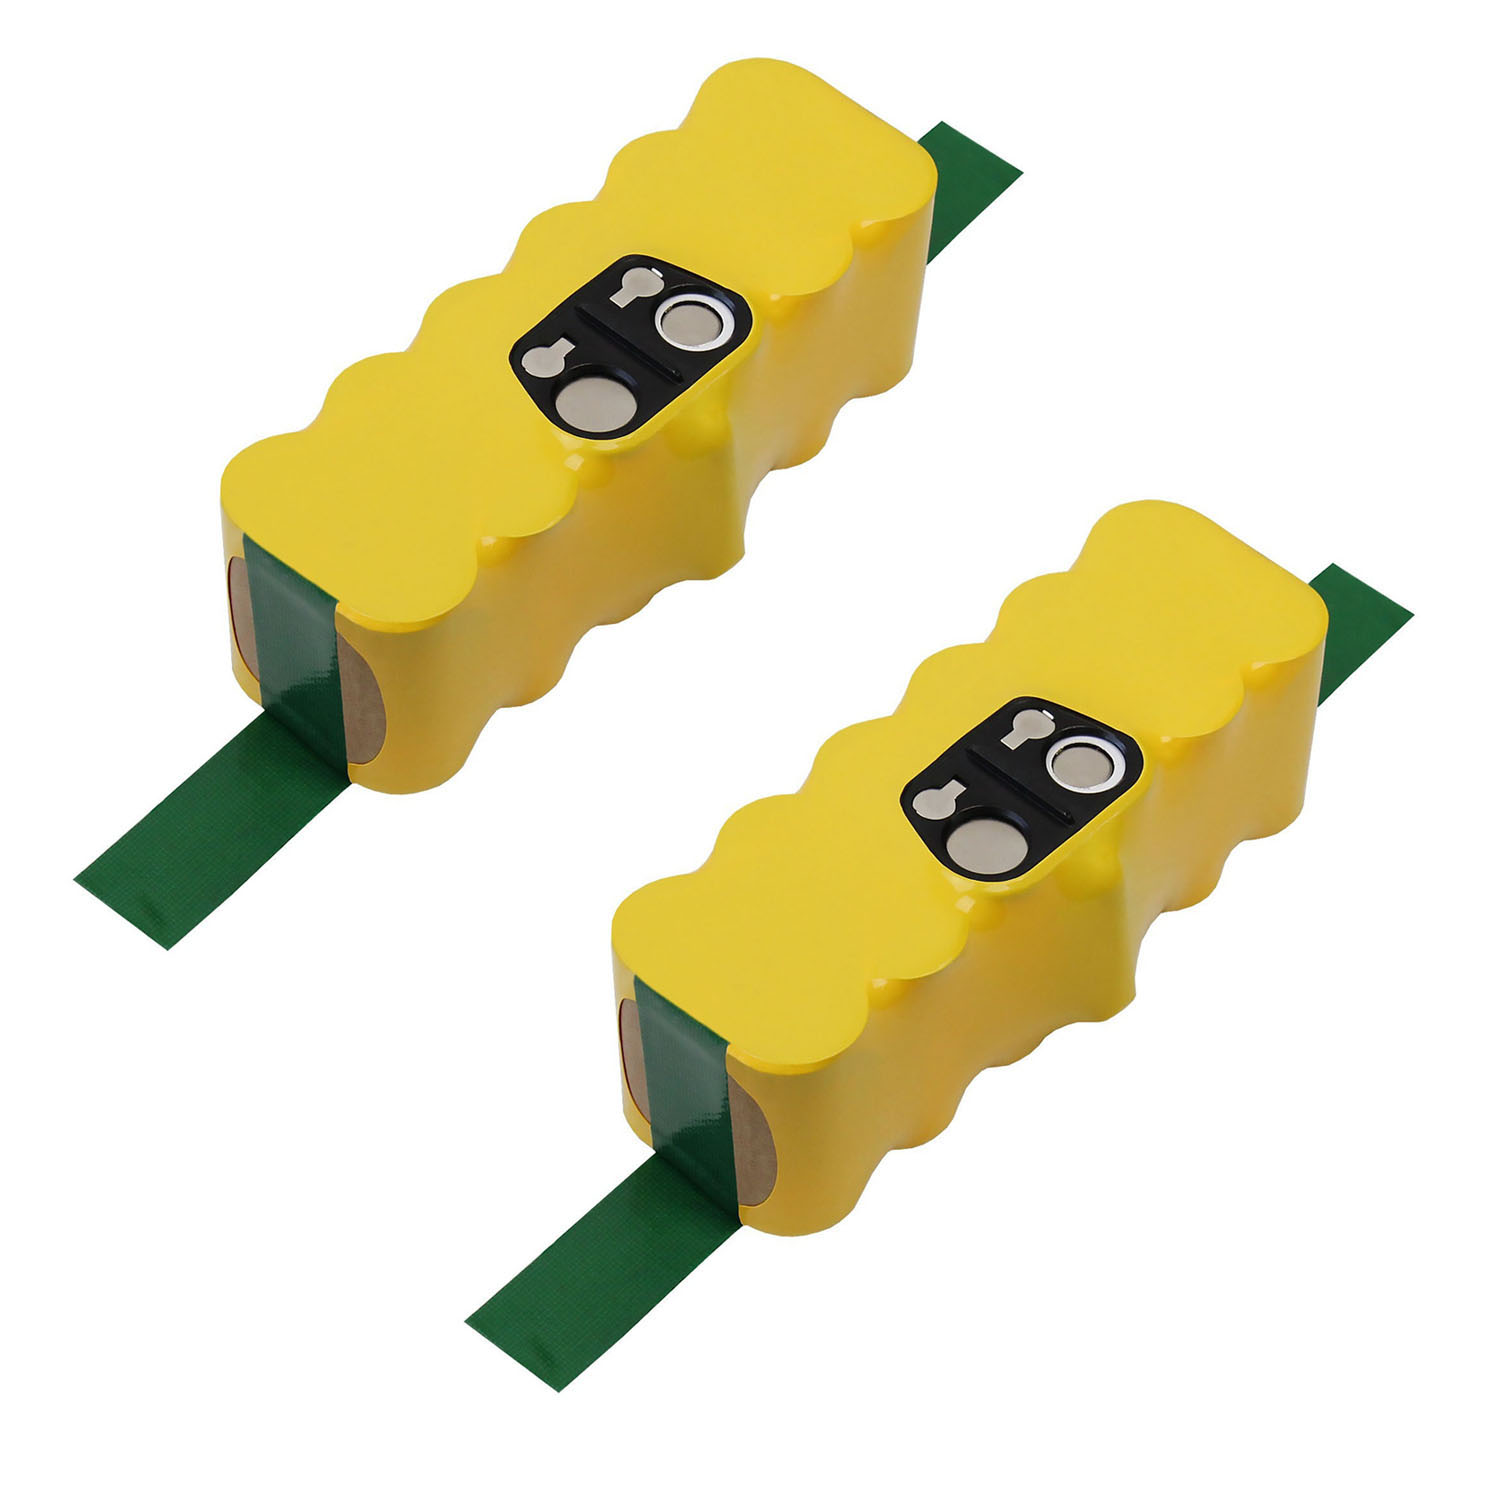 14.4v NICD 2000MAH Replacement for Roomba 500 Series - 2 Pack